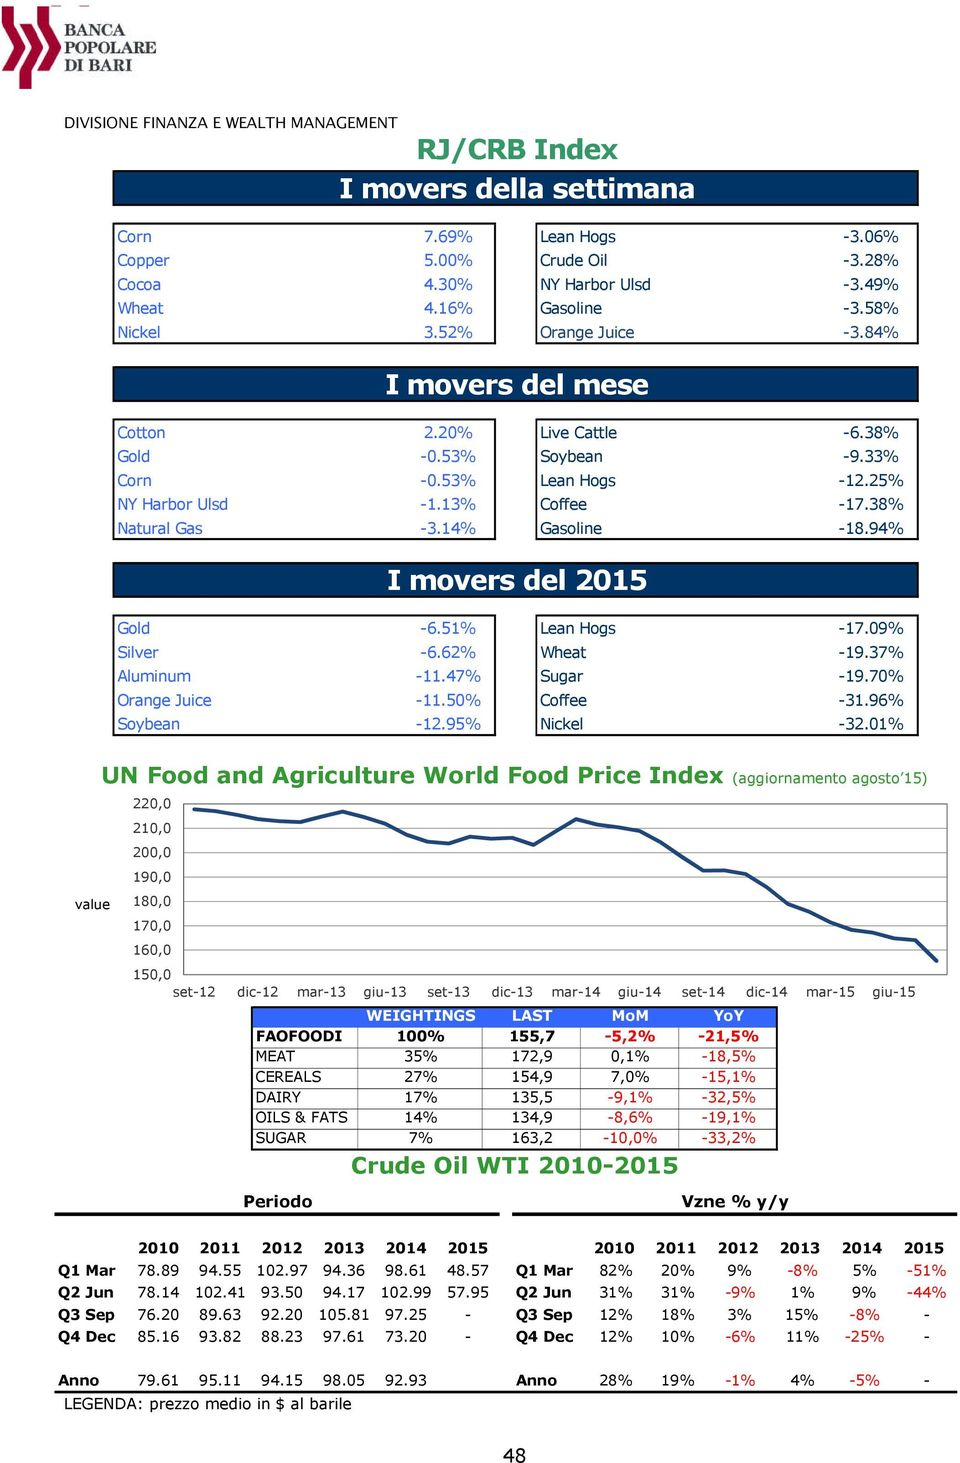 94% I movers del 2015 Gold -6.51% Lean Hogs -17.09% Silver -6.62% Wheat -19.37% Aluminum -11.47% Sugar -19.70% Orange Juice -11.50% Coffee -31.96% Soybean -12.95% Nickel -32.